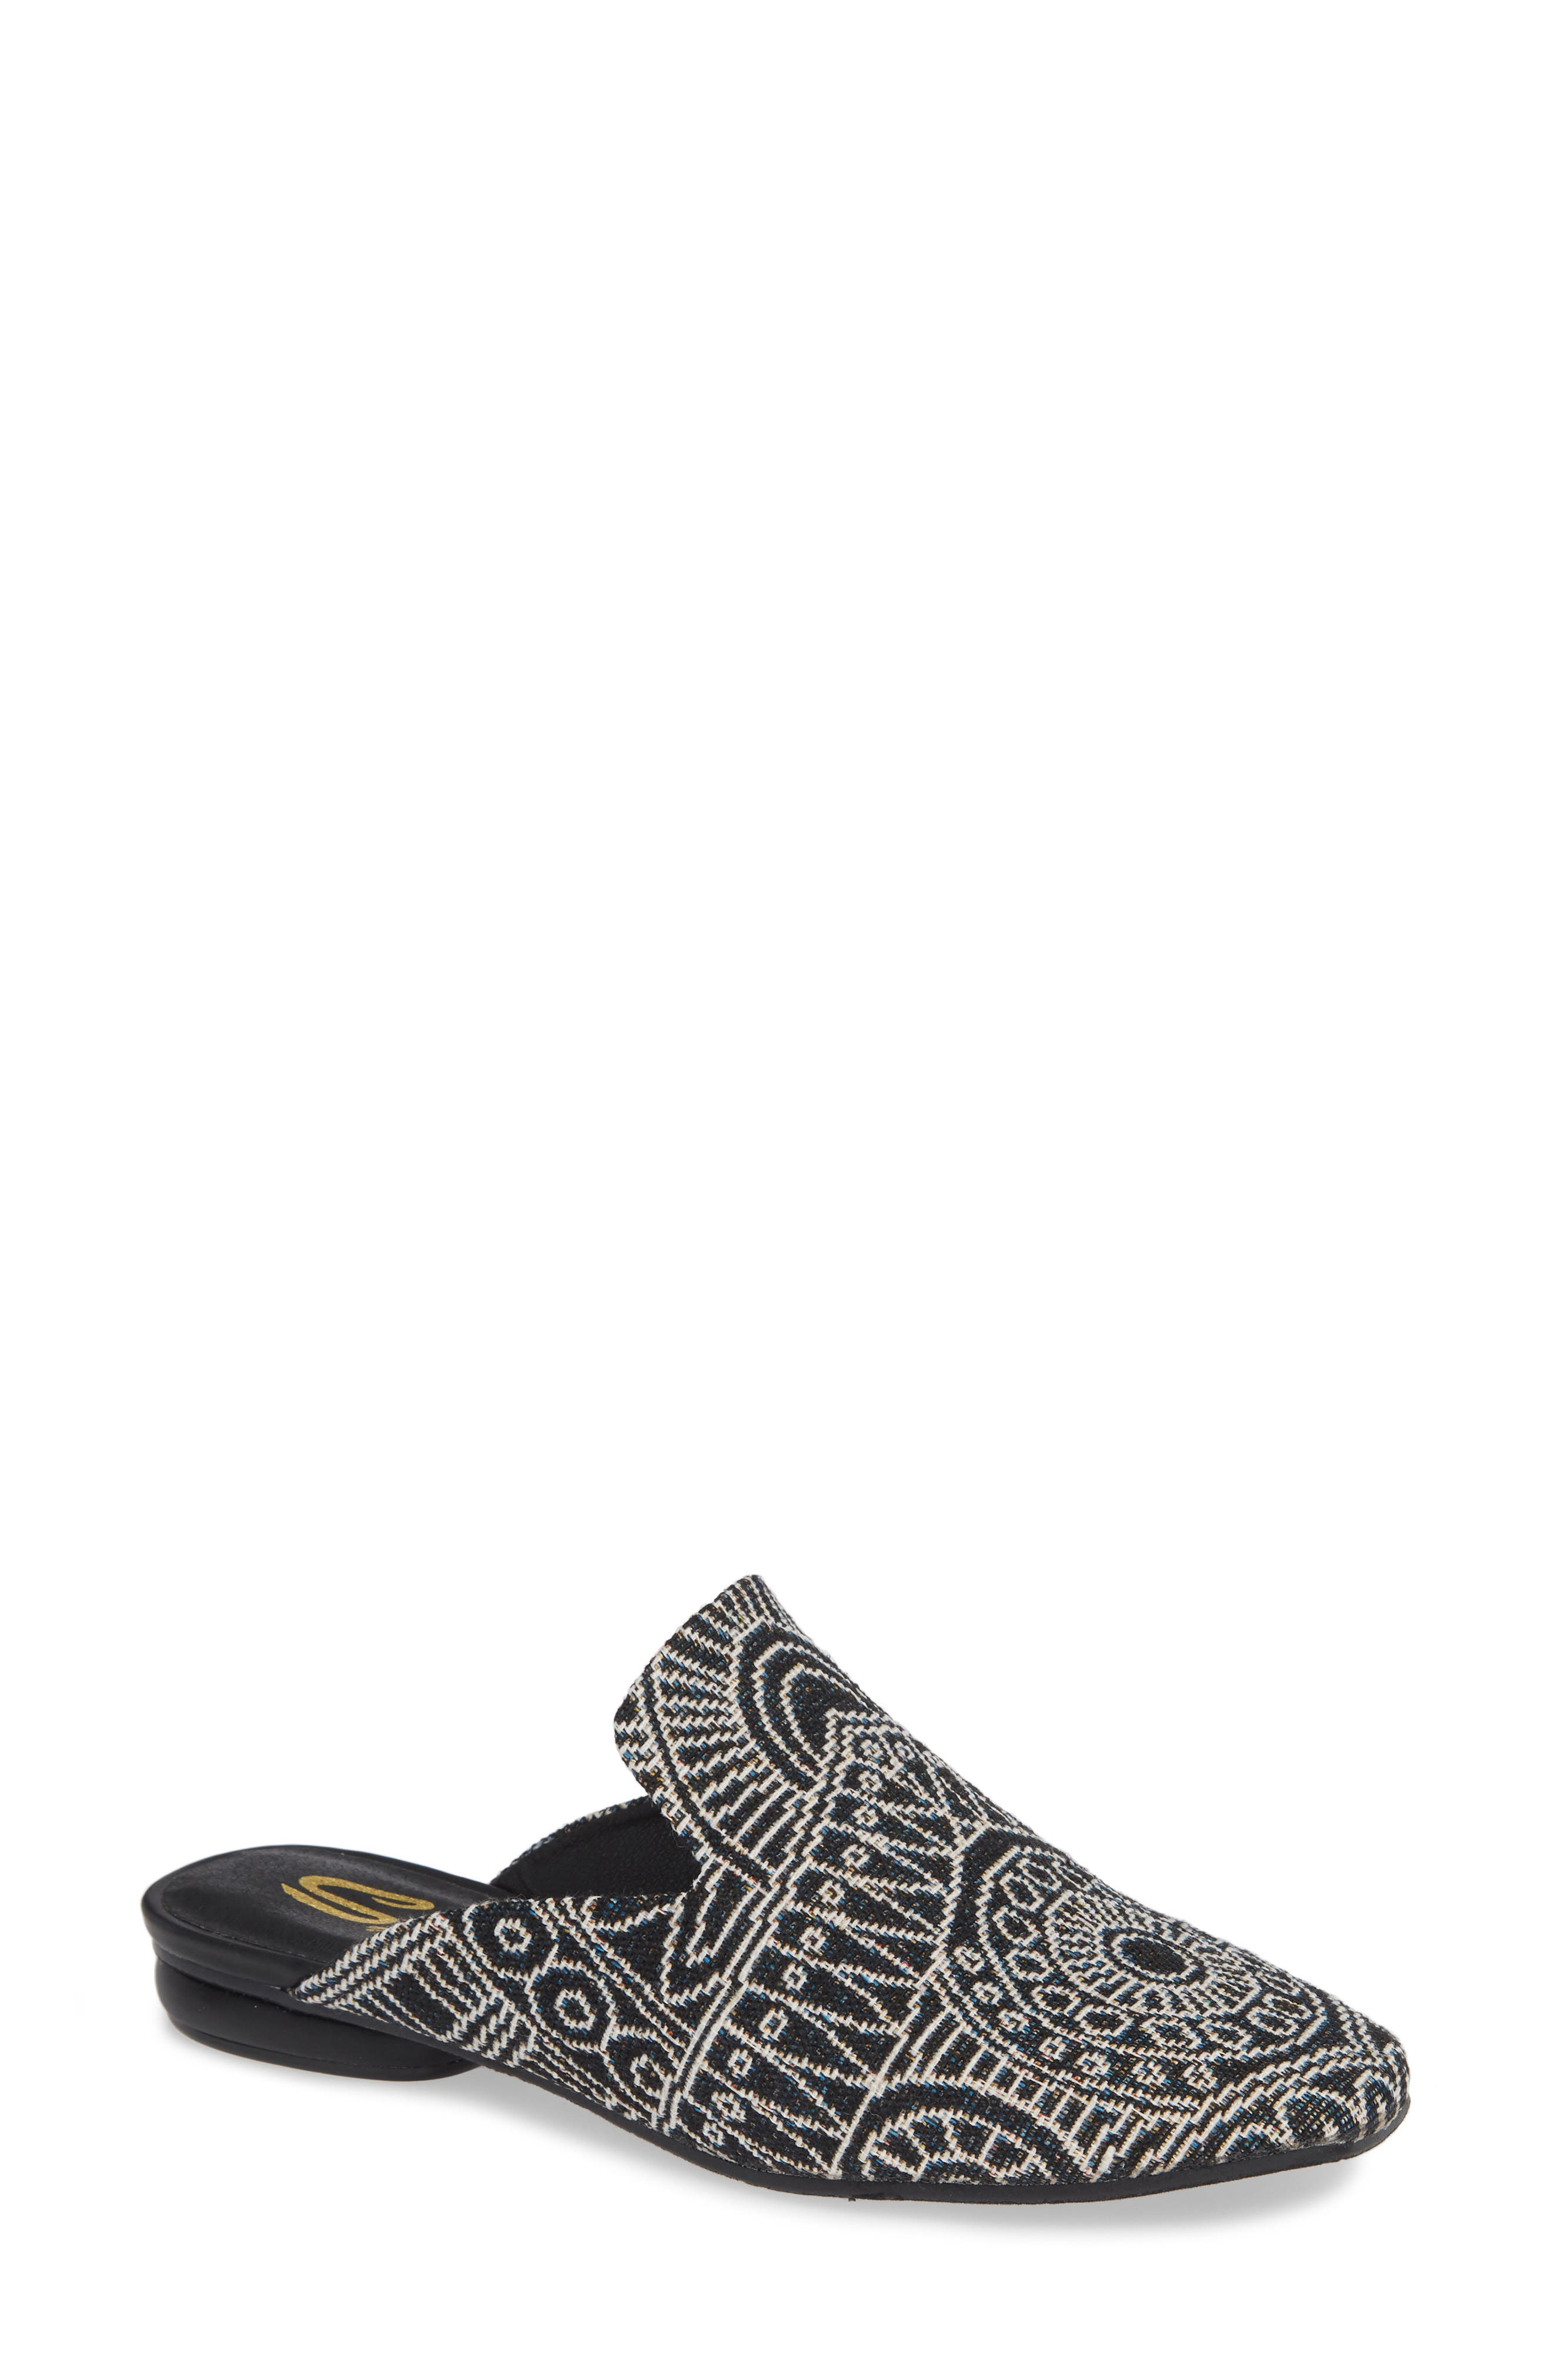 Brienne Loafer Mule, Main, color, BLACK/ WHITE FABRIC